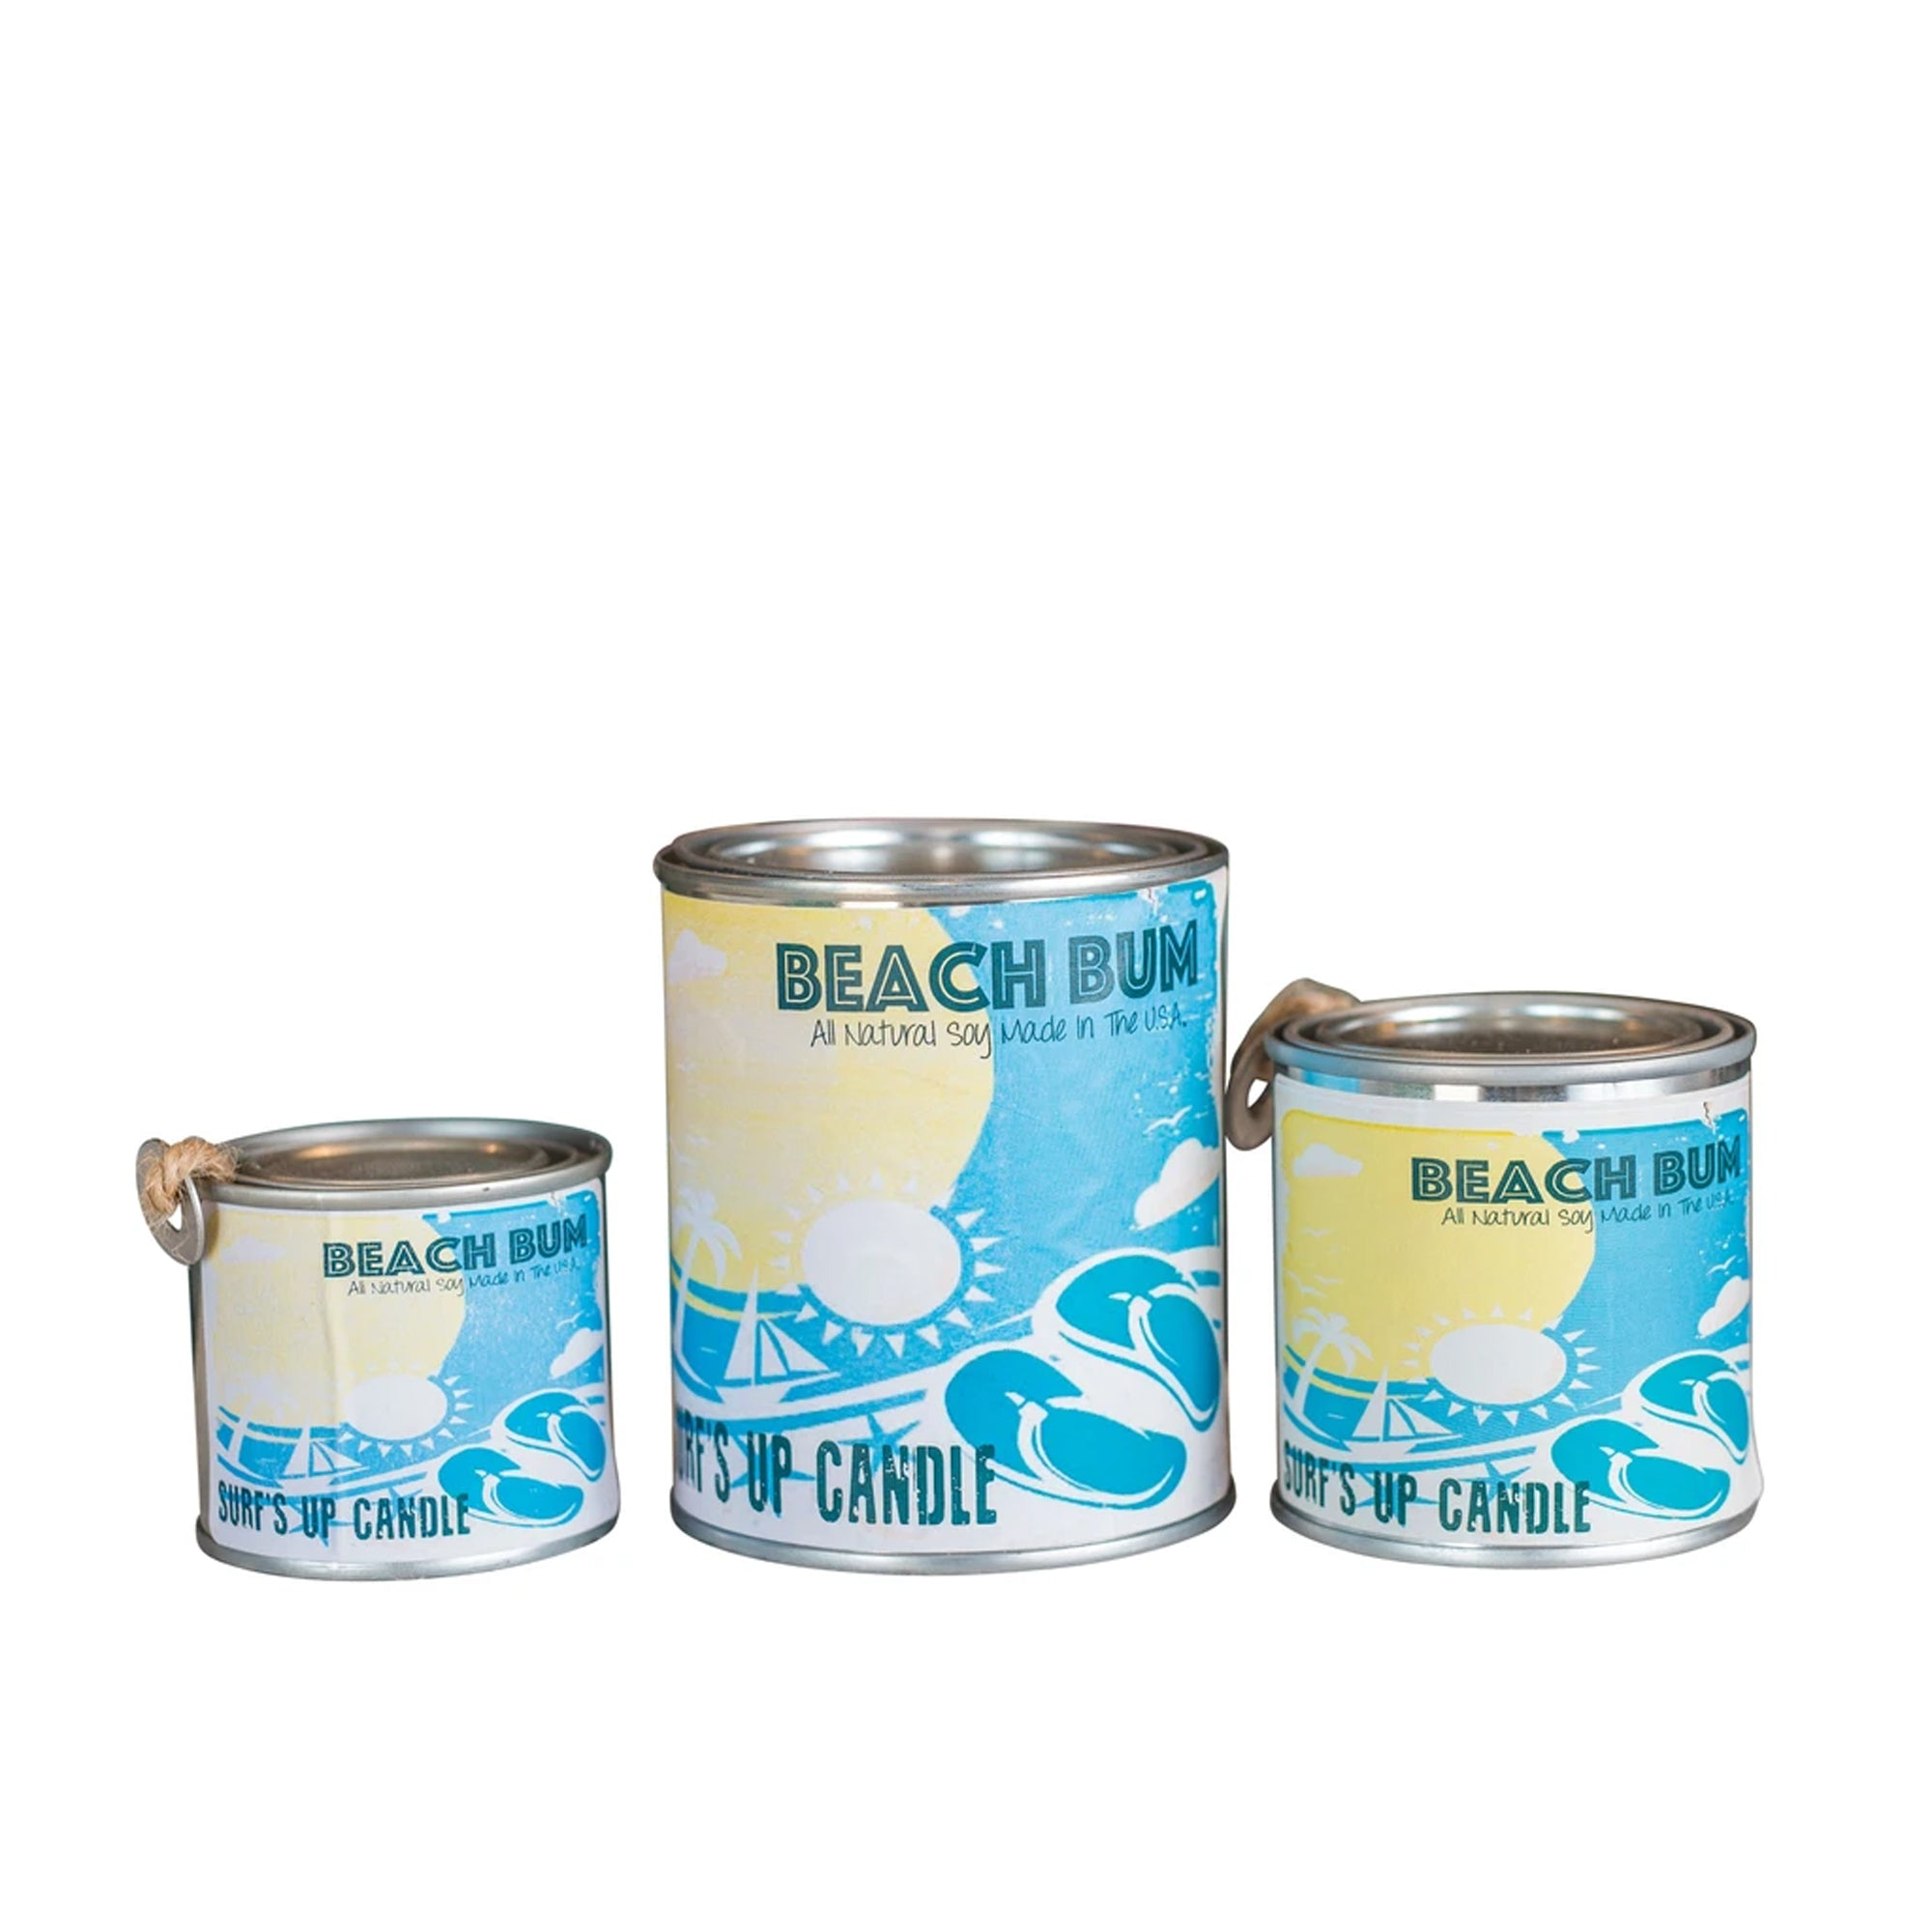 Surf's Up Paint Can Soy Candle - Beach Bum